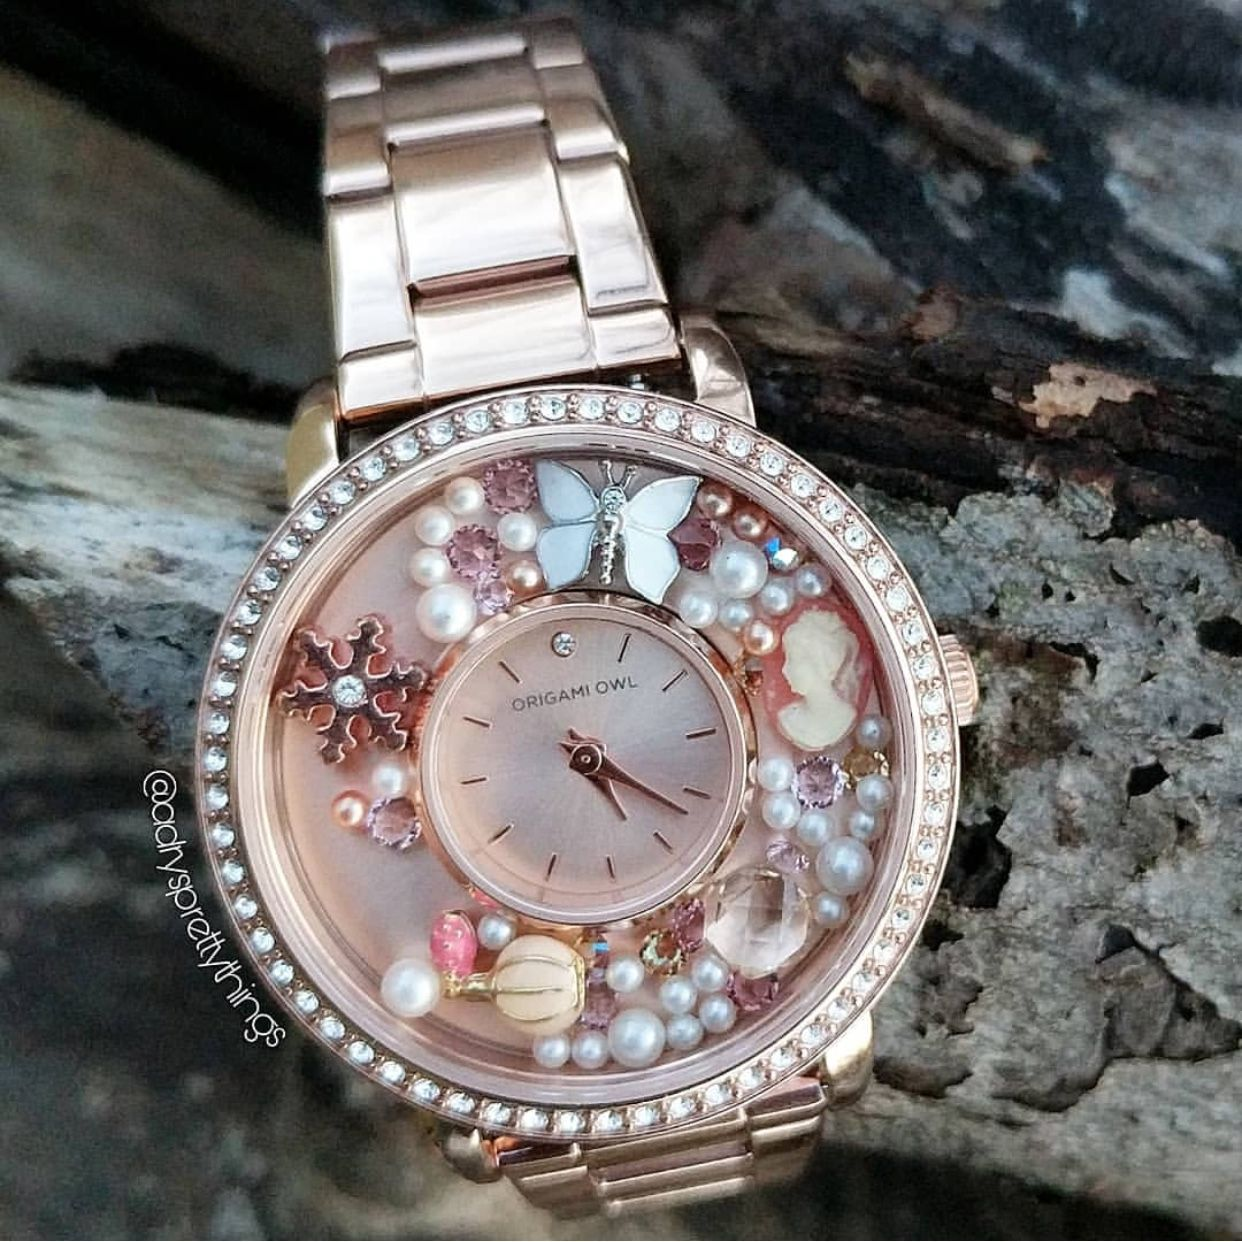 Origami Owl I Love How Beautiful This Rose Gold Watch Is